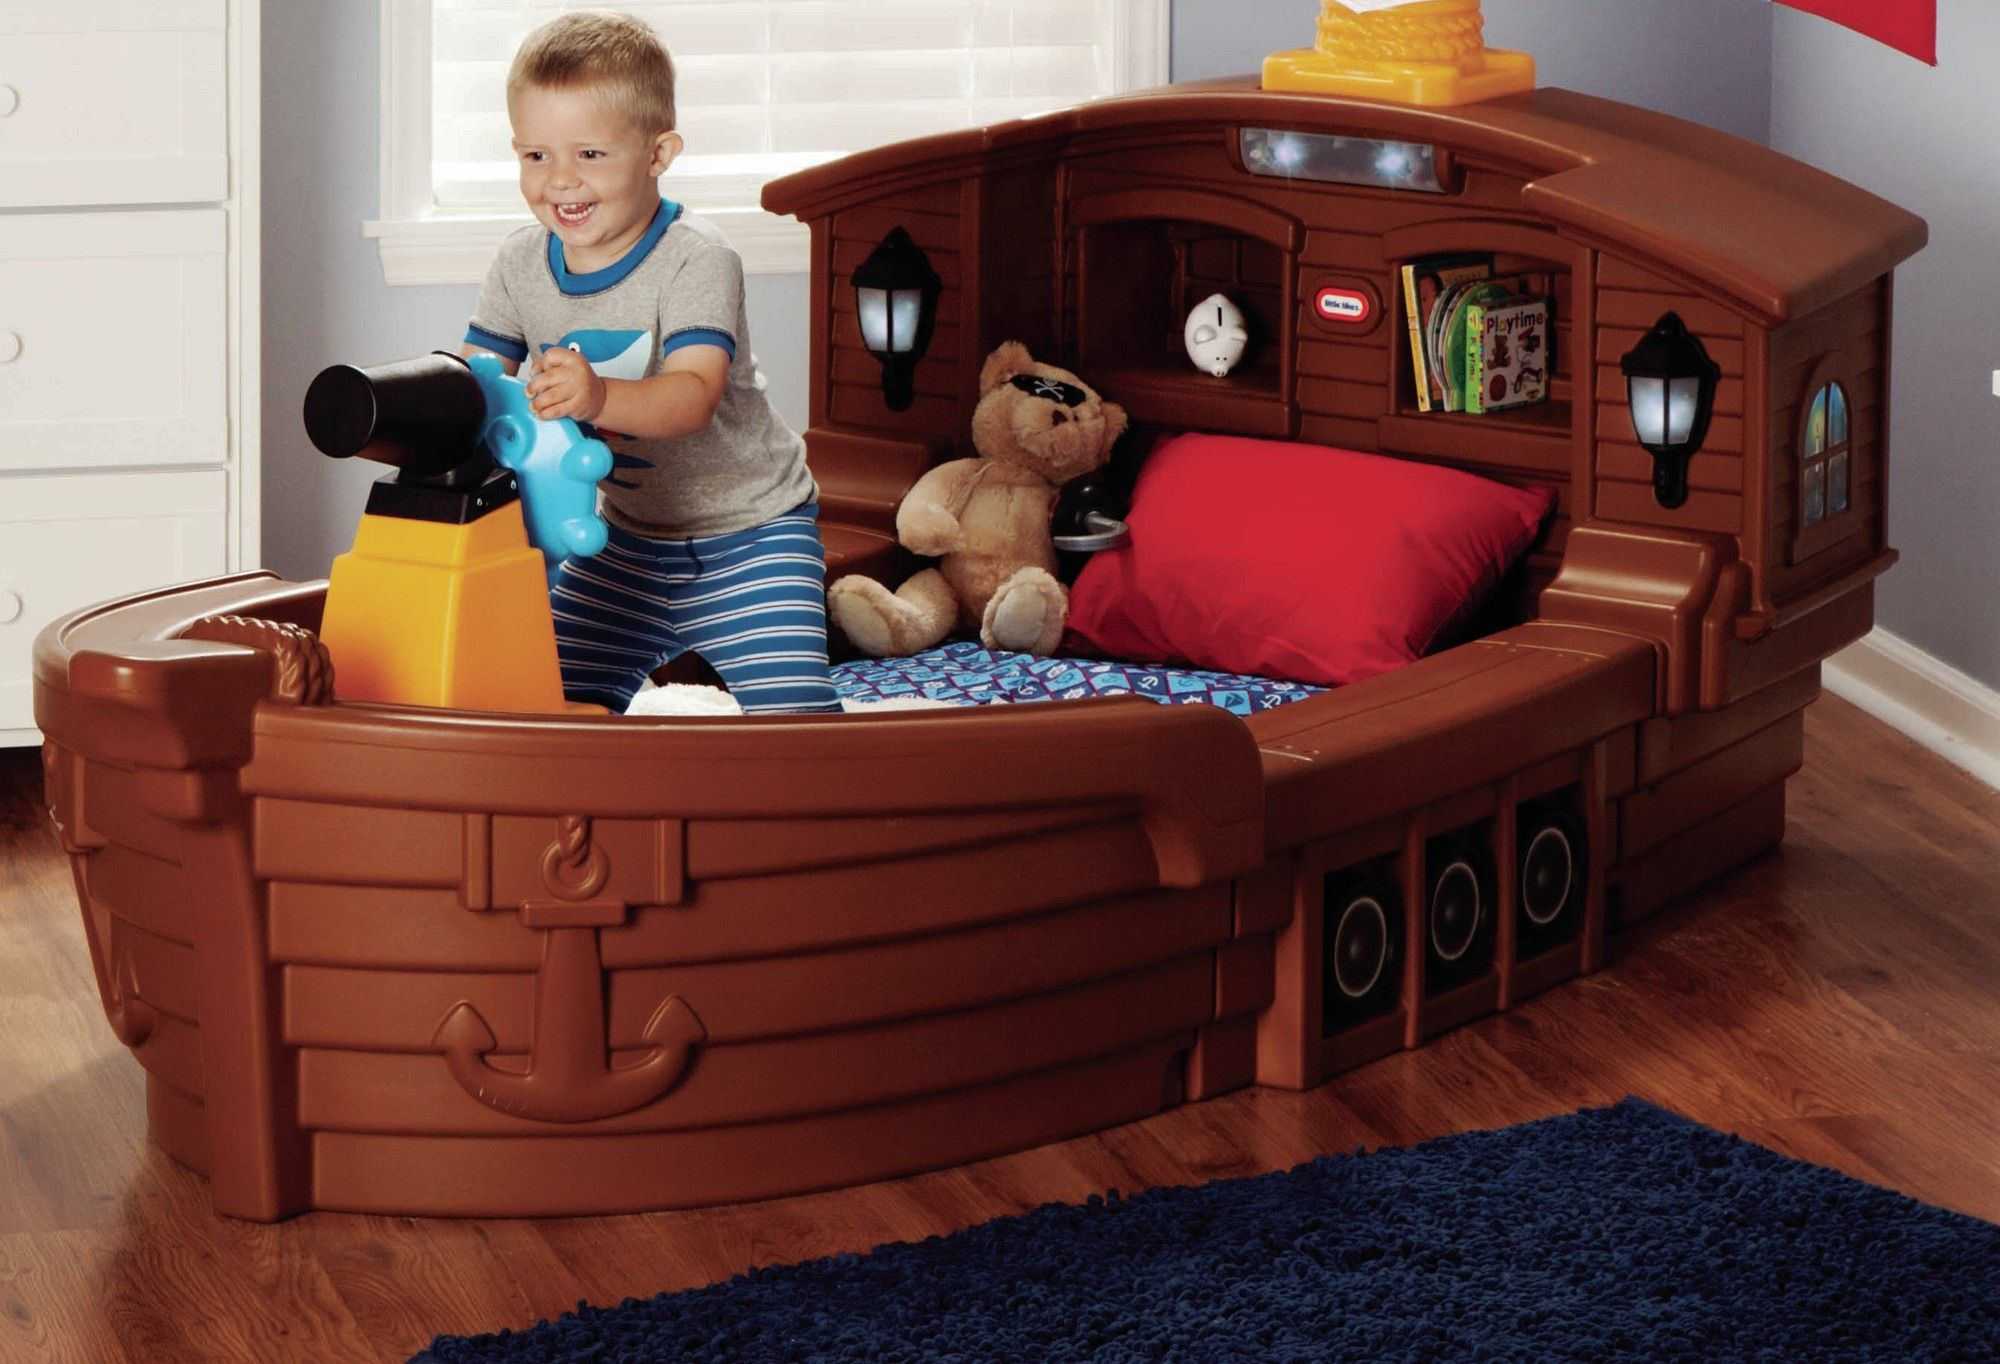 10 Adorable Toddler Beds Convertible Toddler Bed Toddler Bed